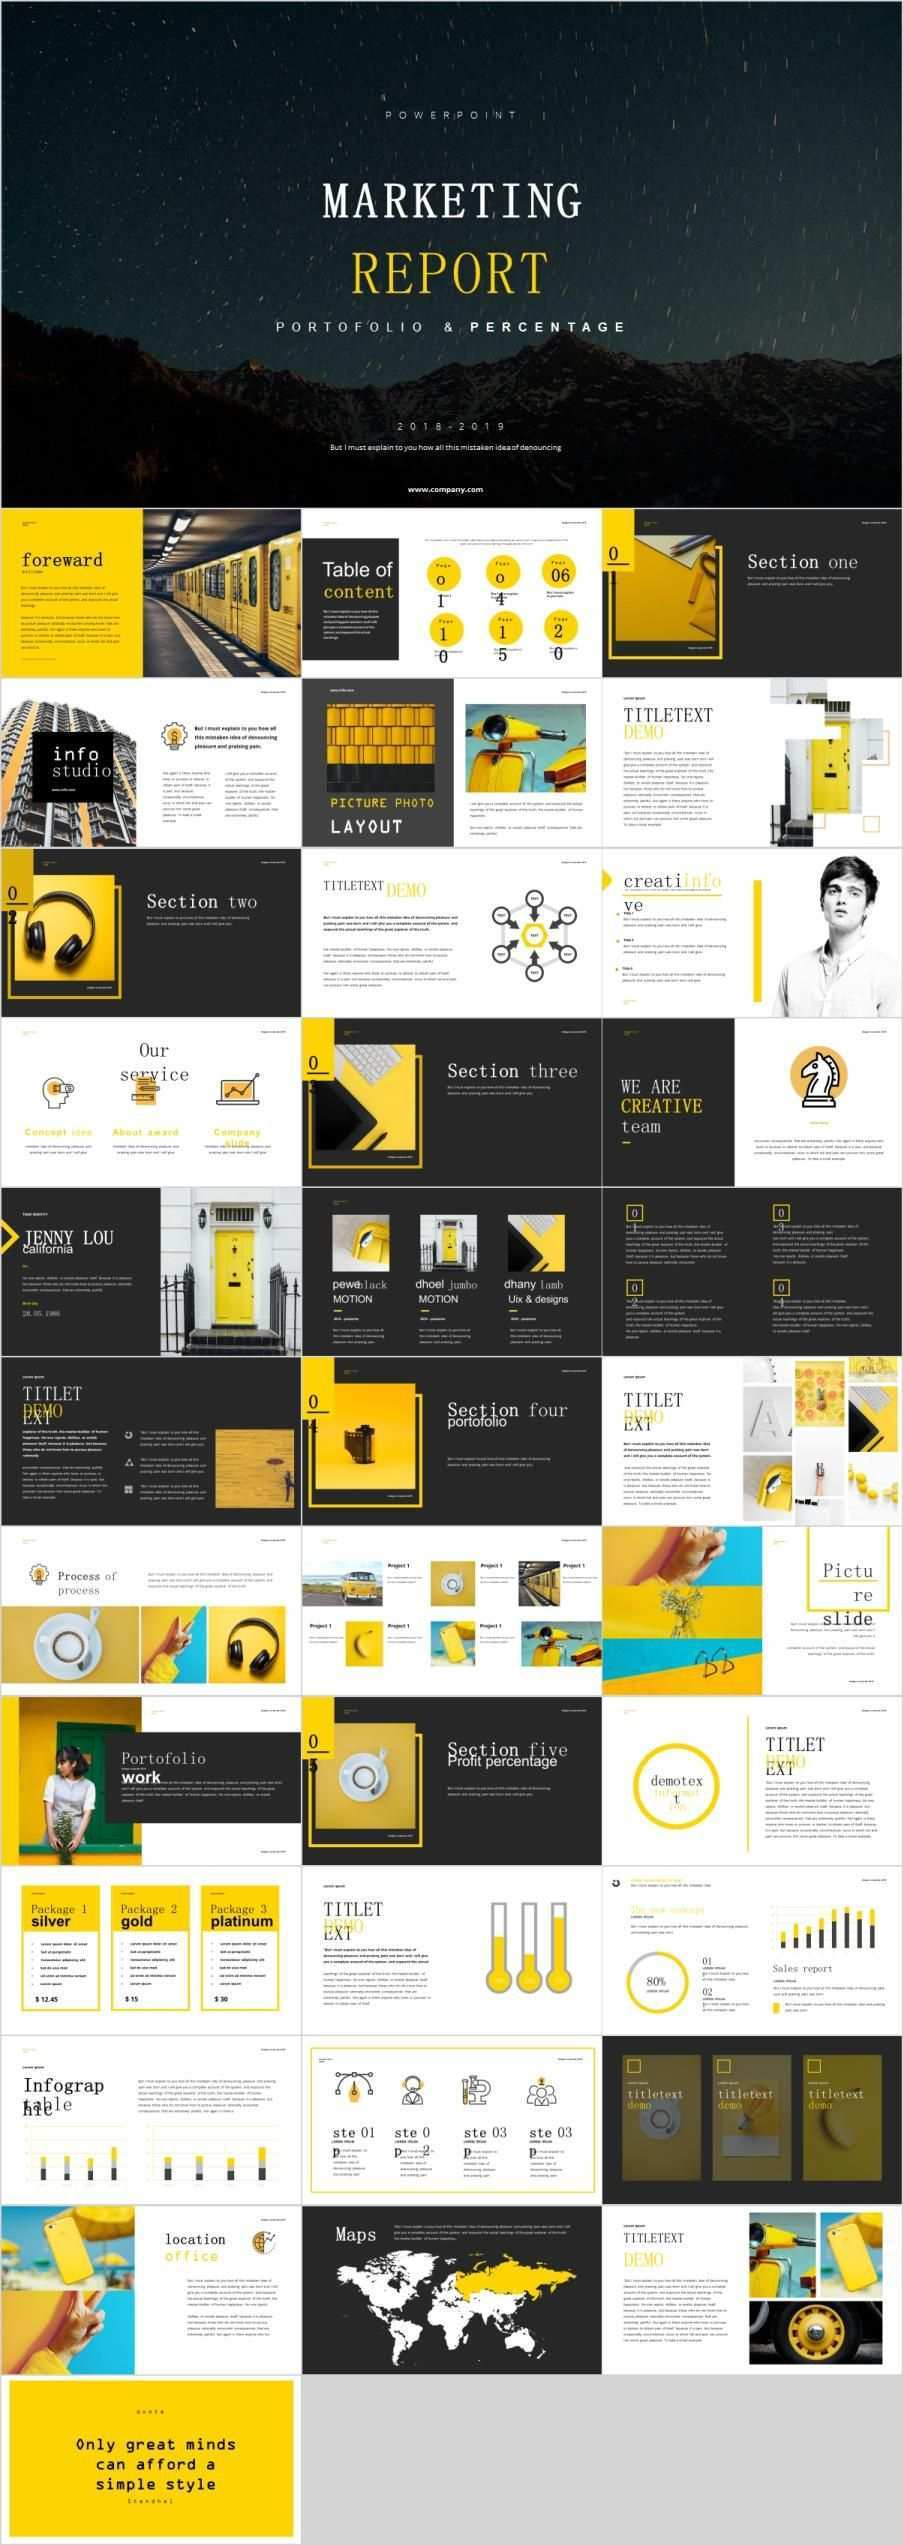 Yellow Market Report Powerpoint Template Powerpoint Templates Marketing Report Template Creative Powerpoint Templates